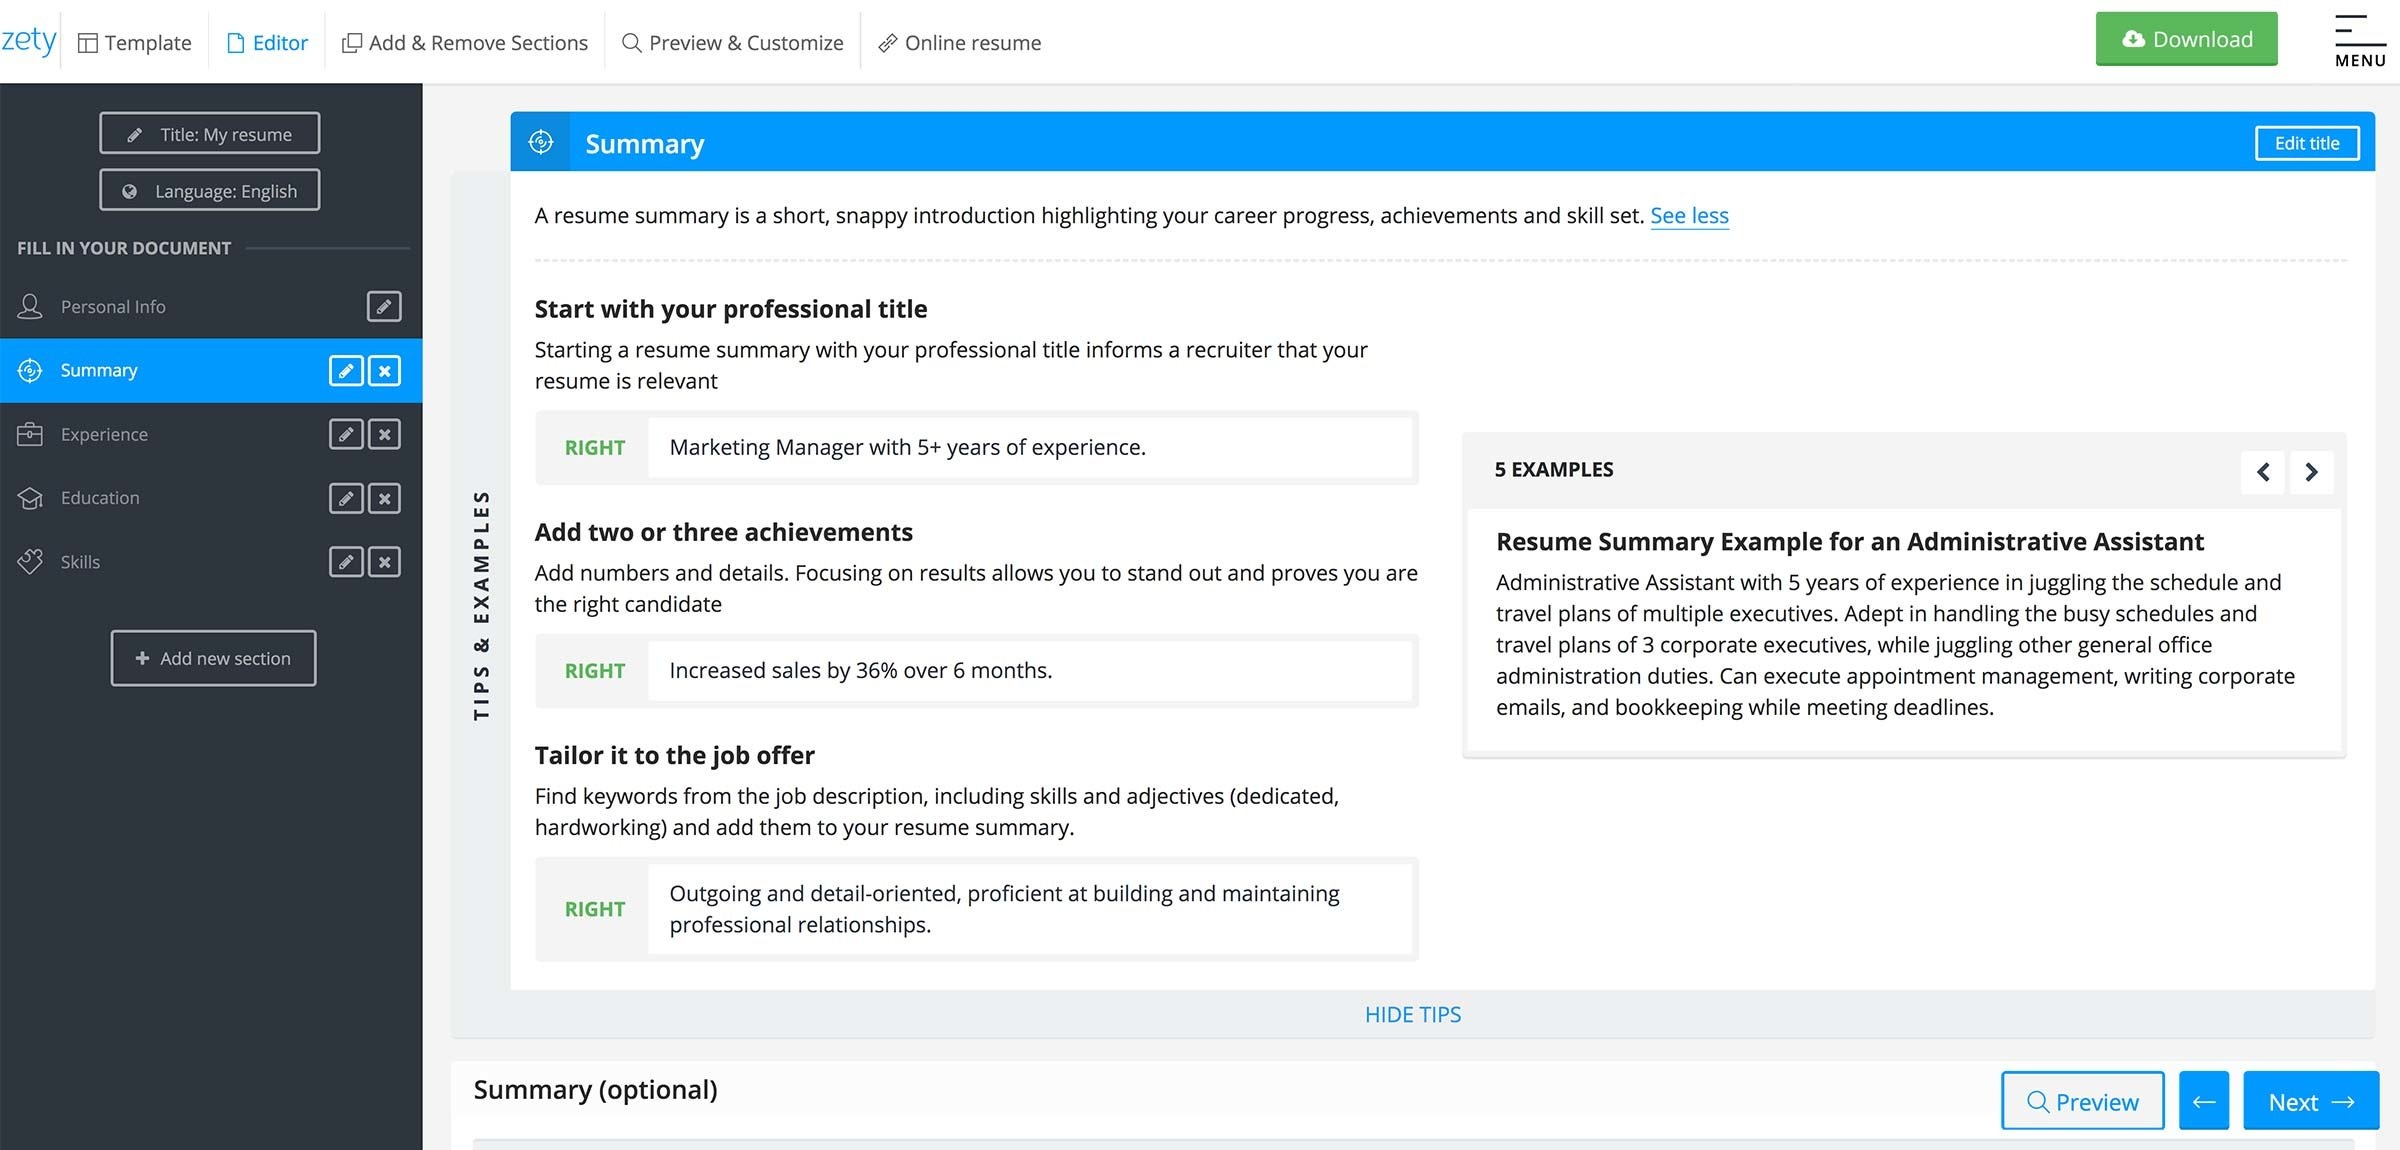 12 Best Online Resume Builders Reviewed